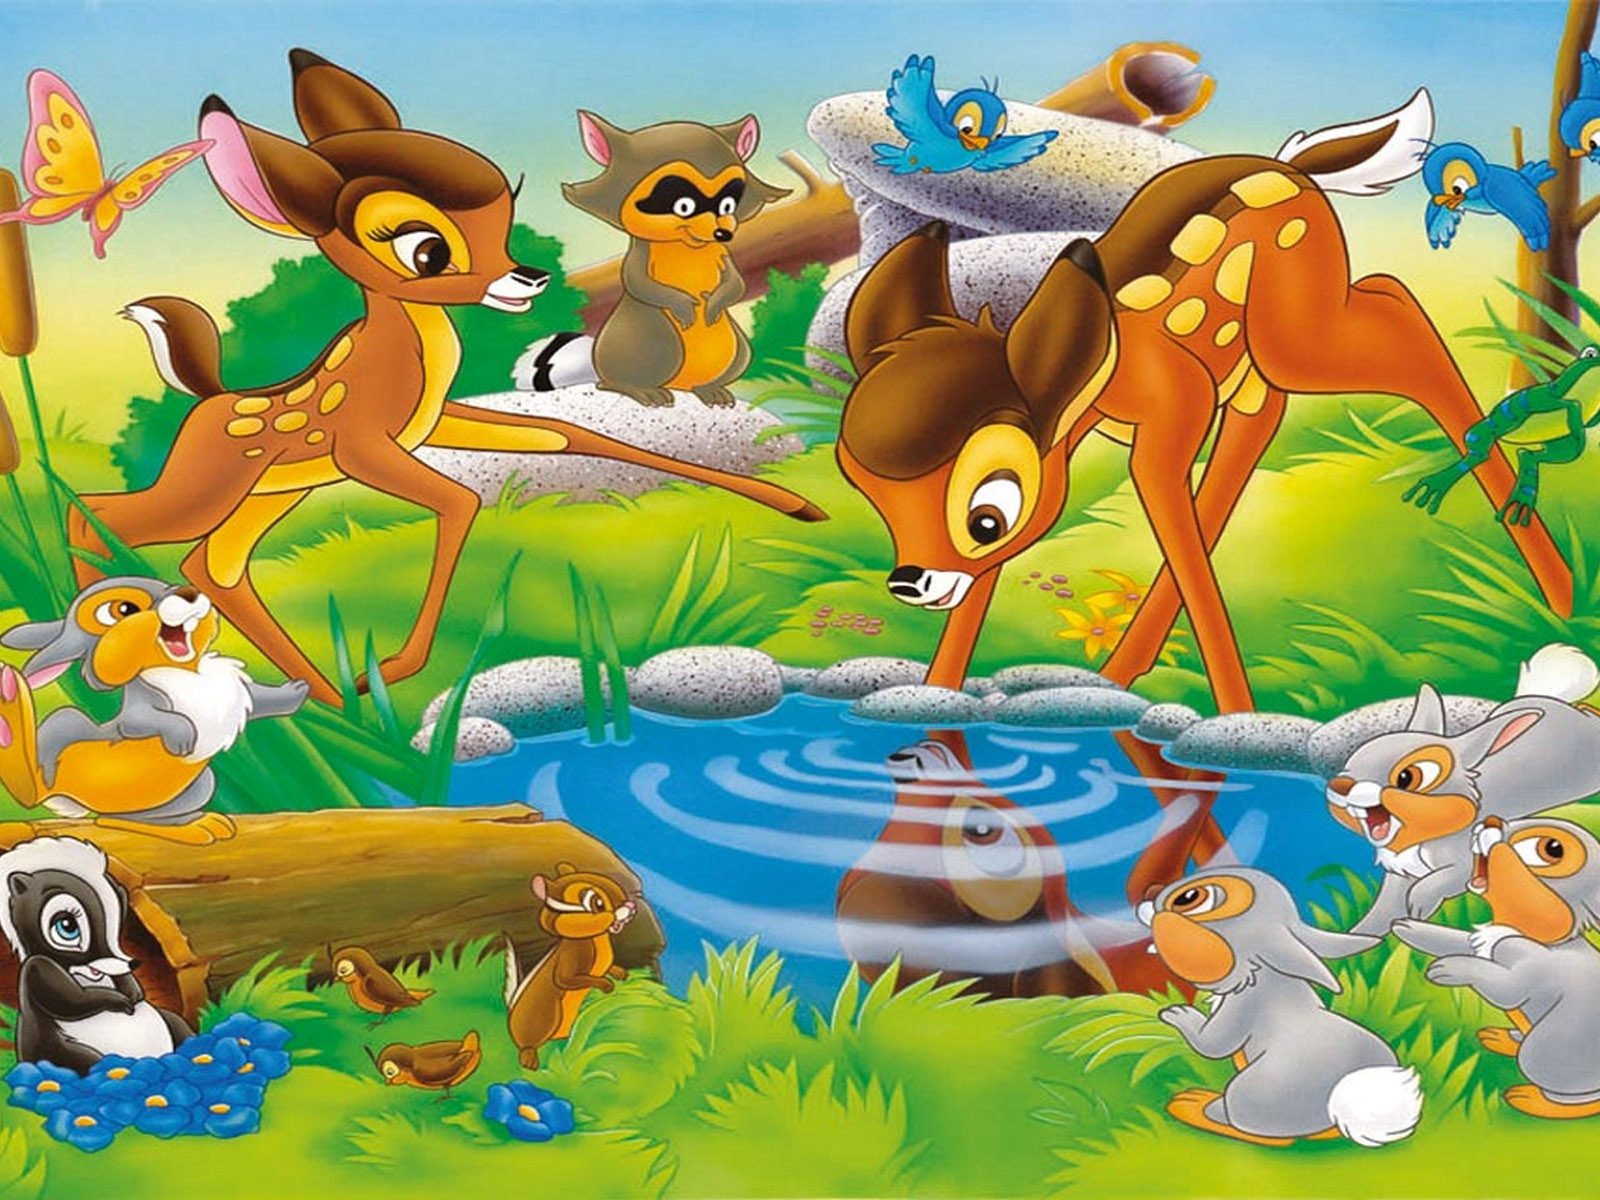 The Cars Disney Wallpaper Hd Bambi S Friends Faline Flower Thumper Miss Bunny At The